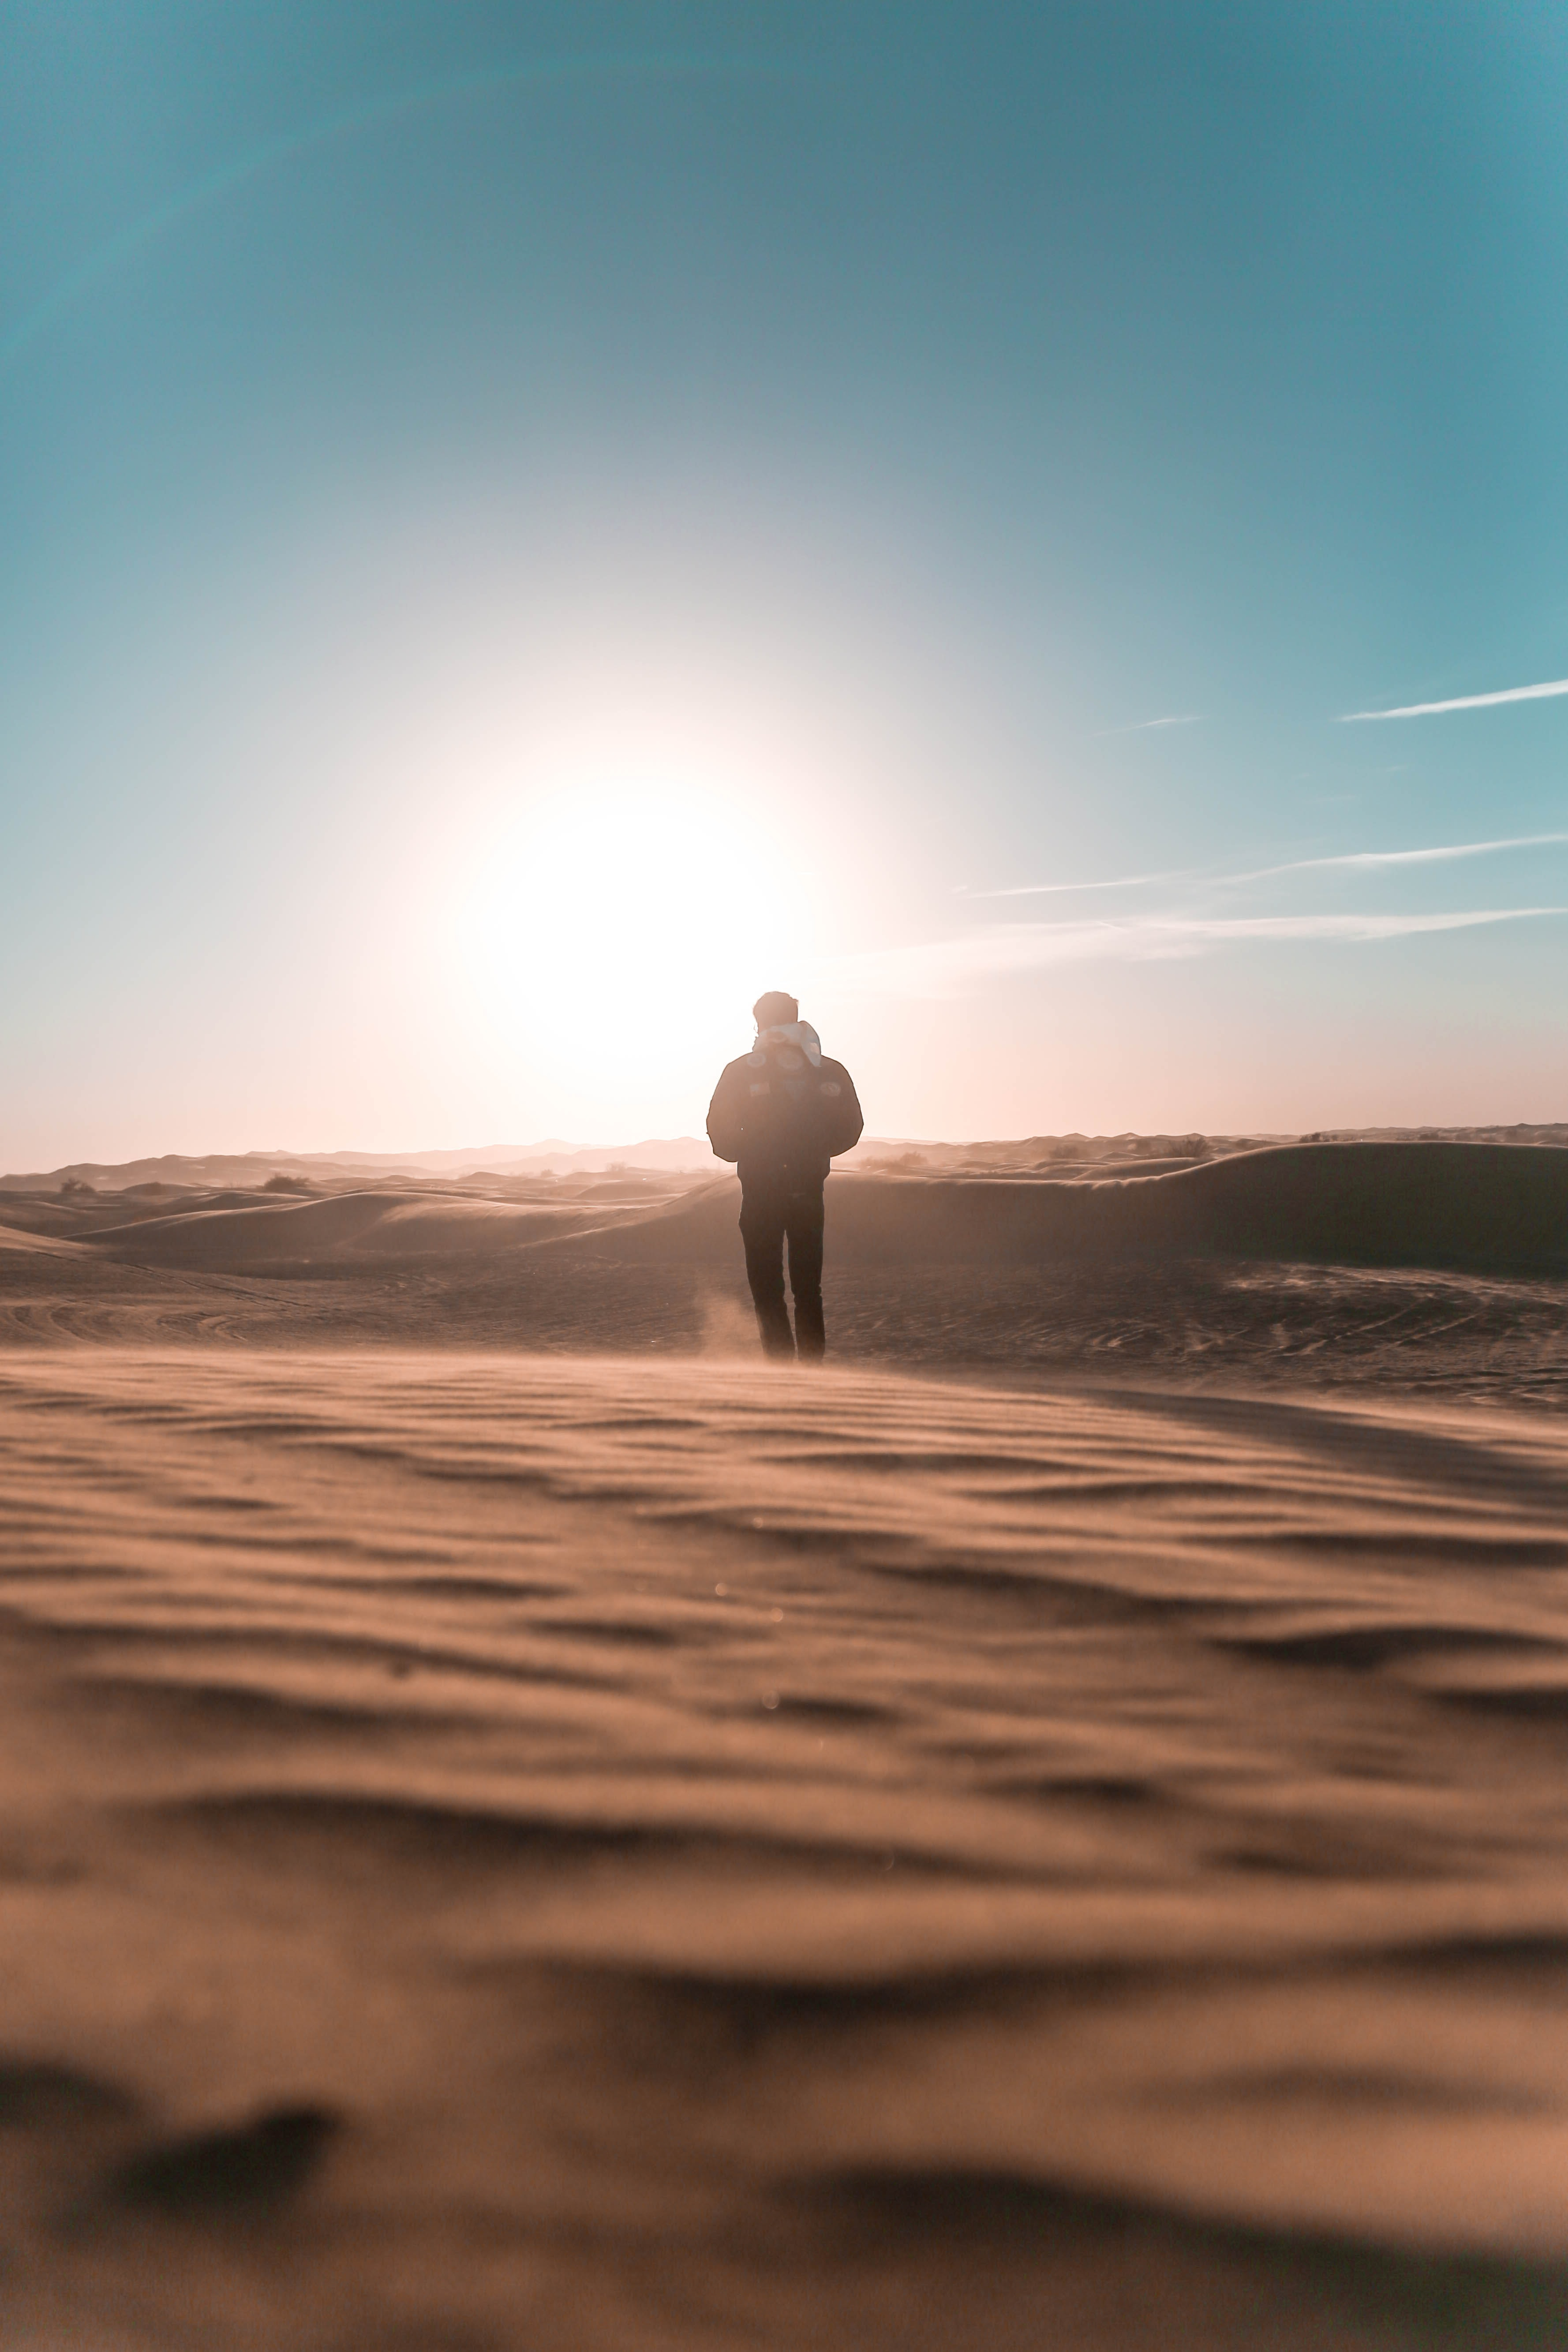 person standing on desert land